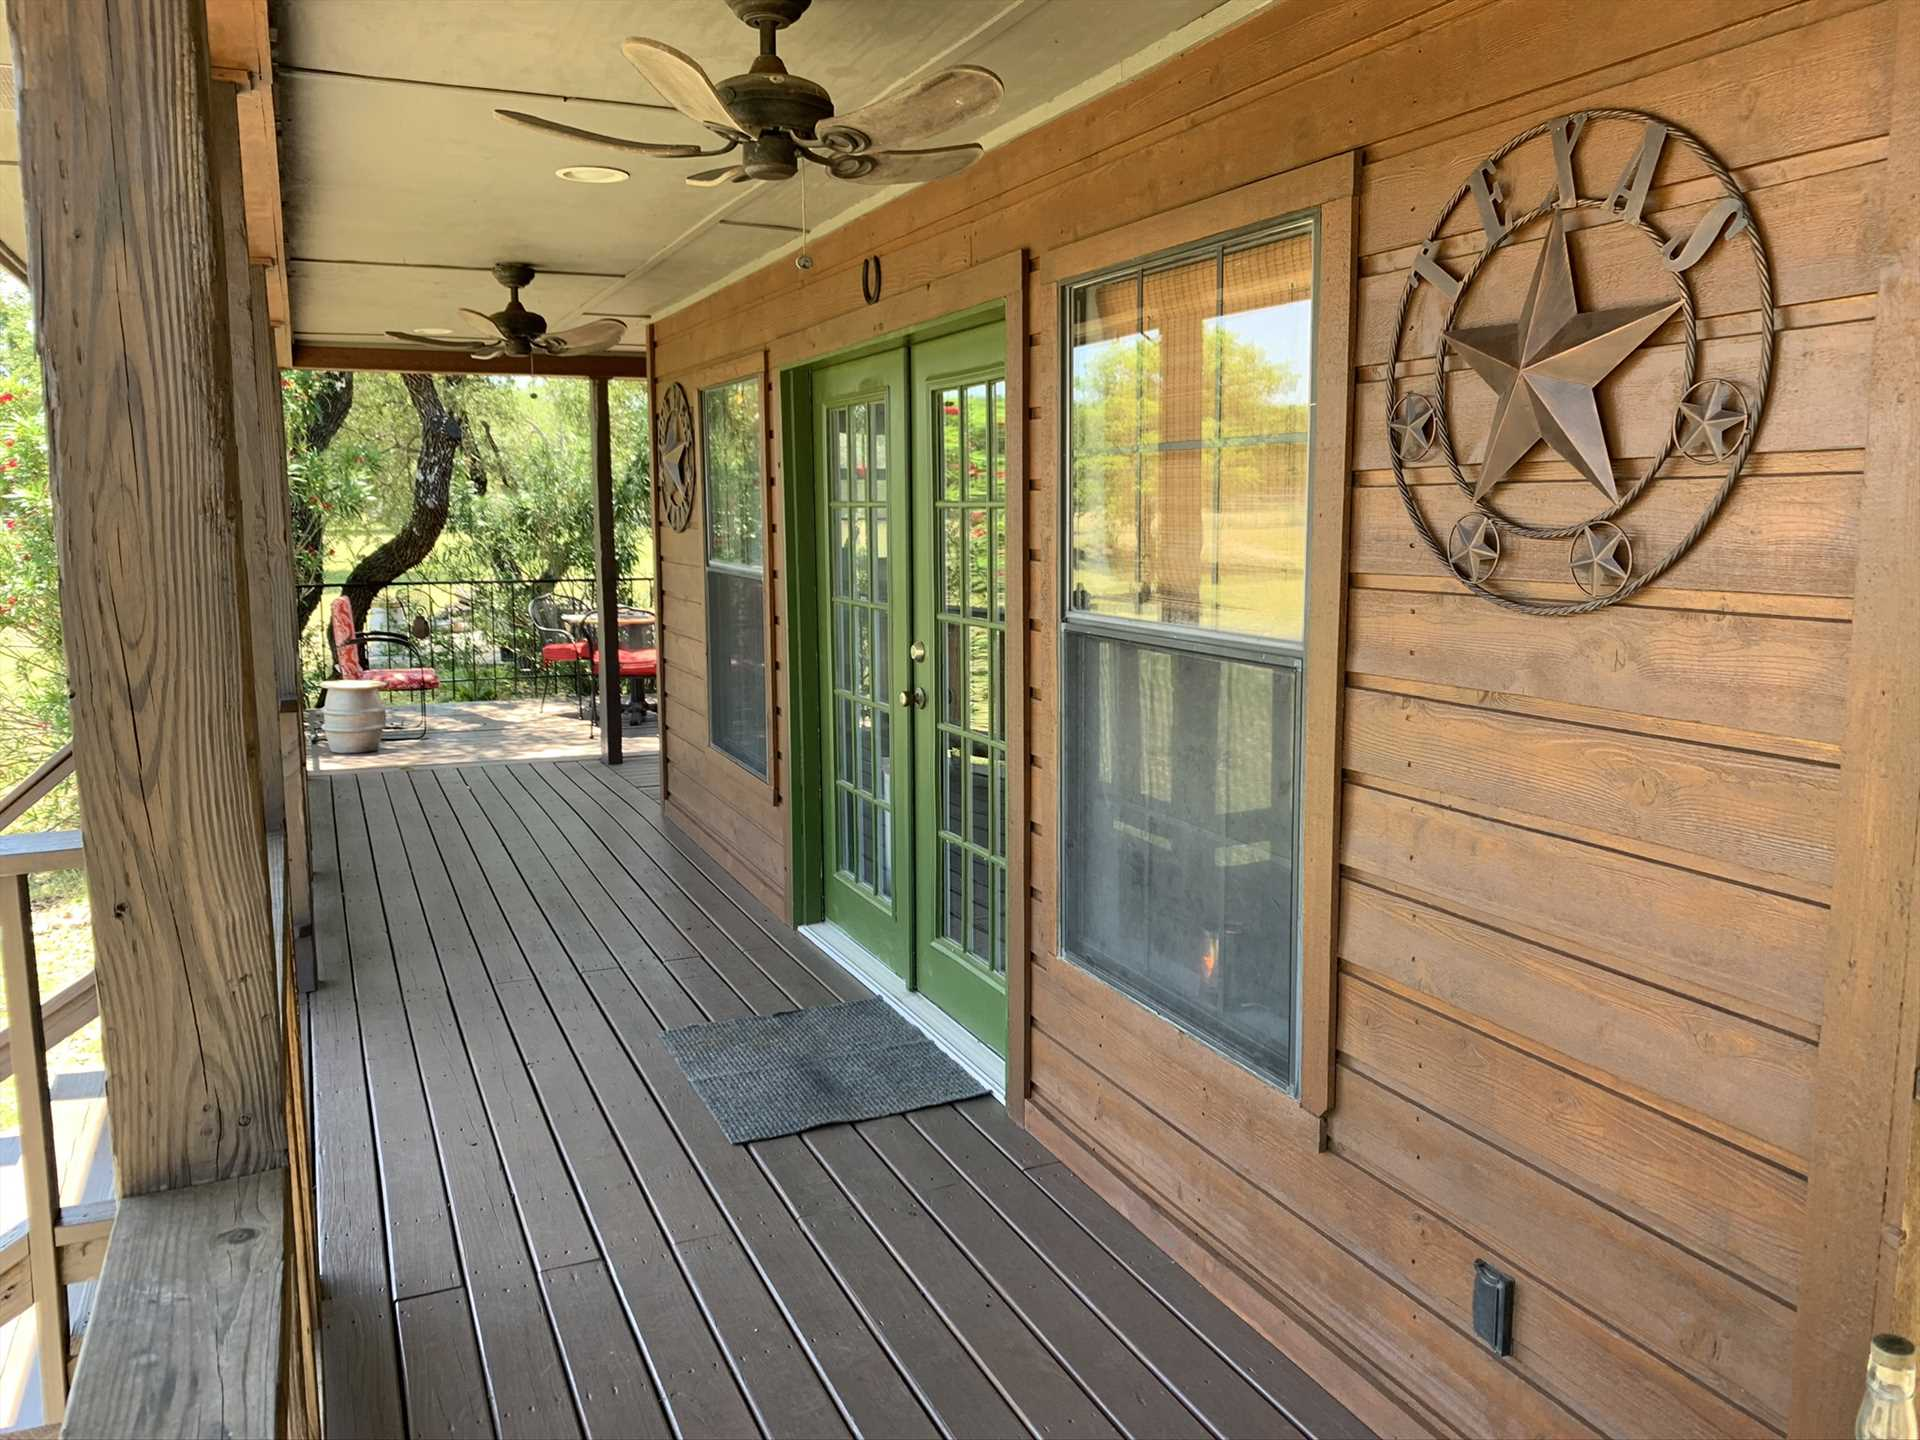 Before you take a step inside, the clean lines and decorative touches of the cabin welcome you to a memorable and romantic experience.